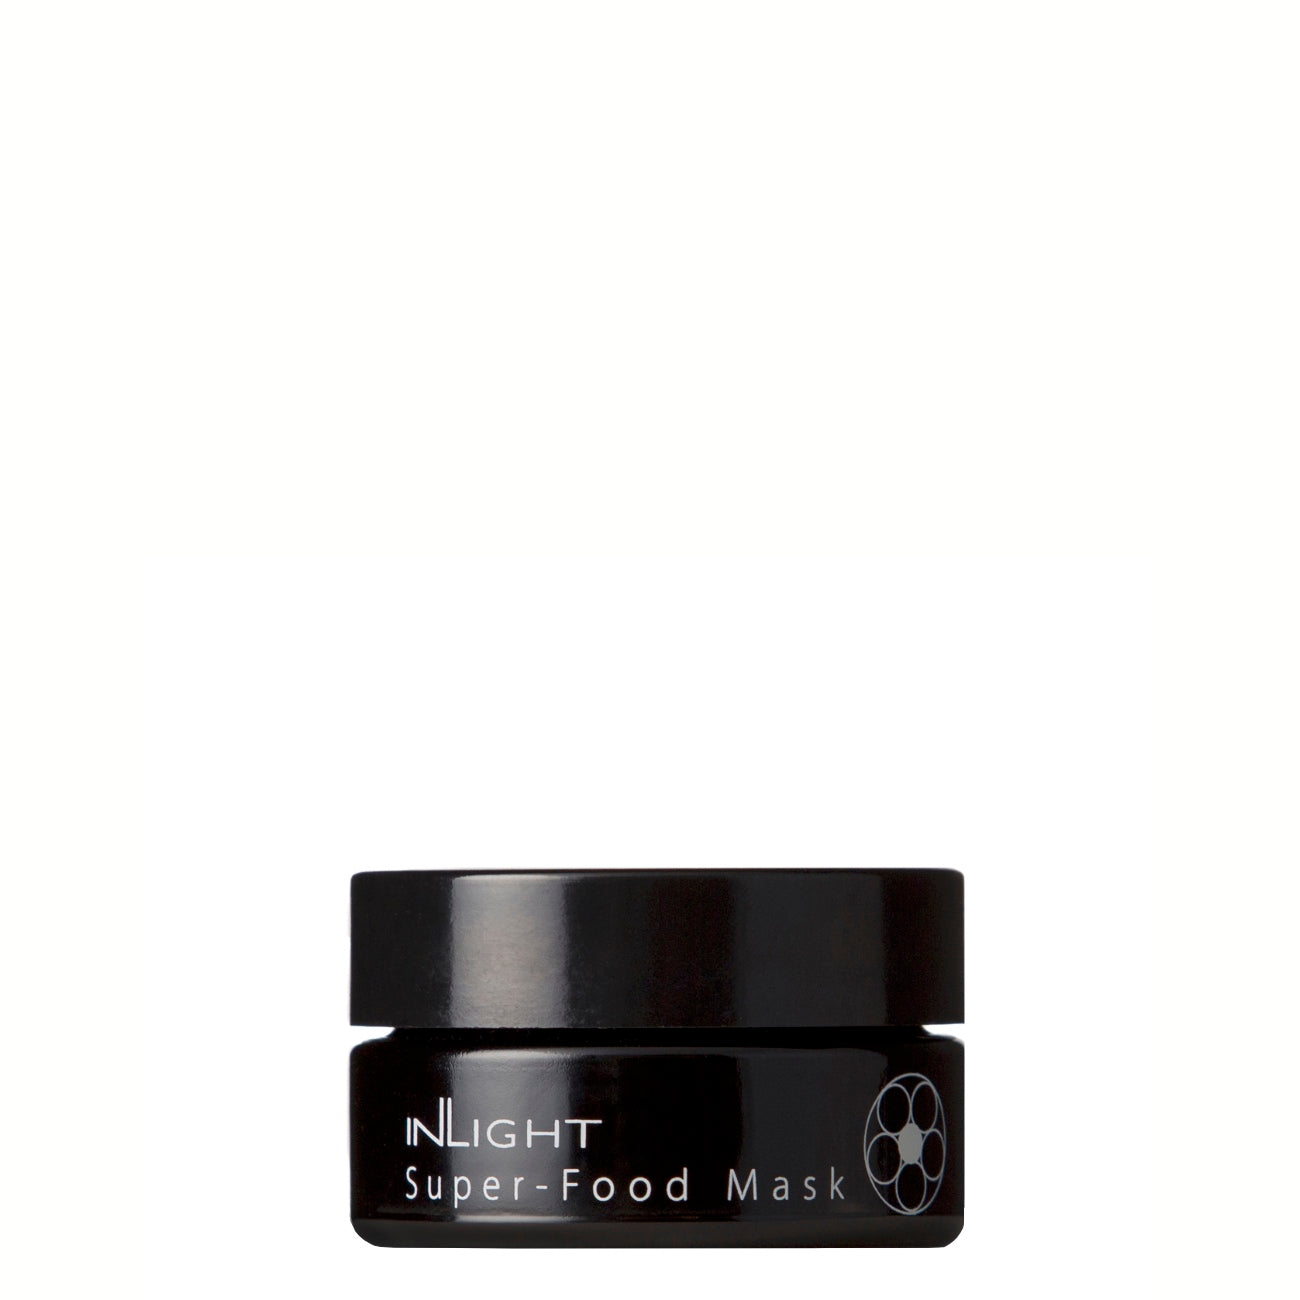 Inlight Super Food Mask - About.Skin